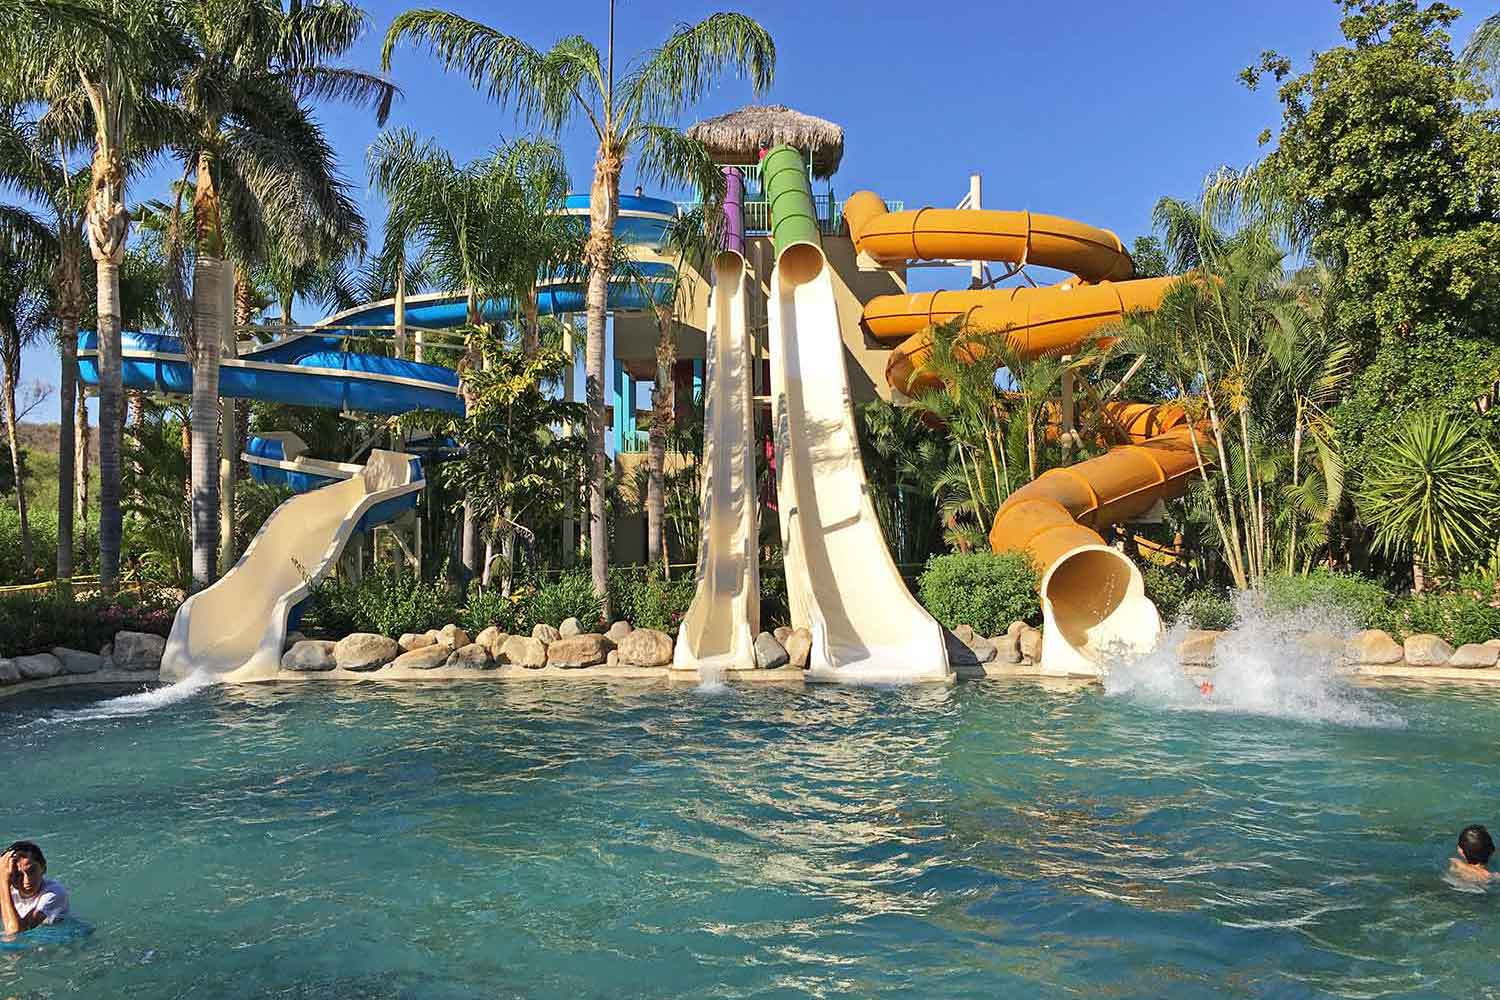 Attractions Nearby Areas